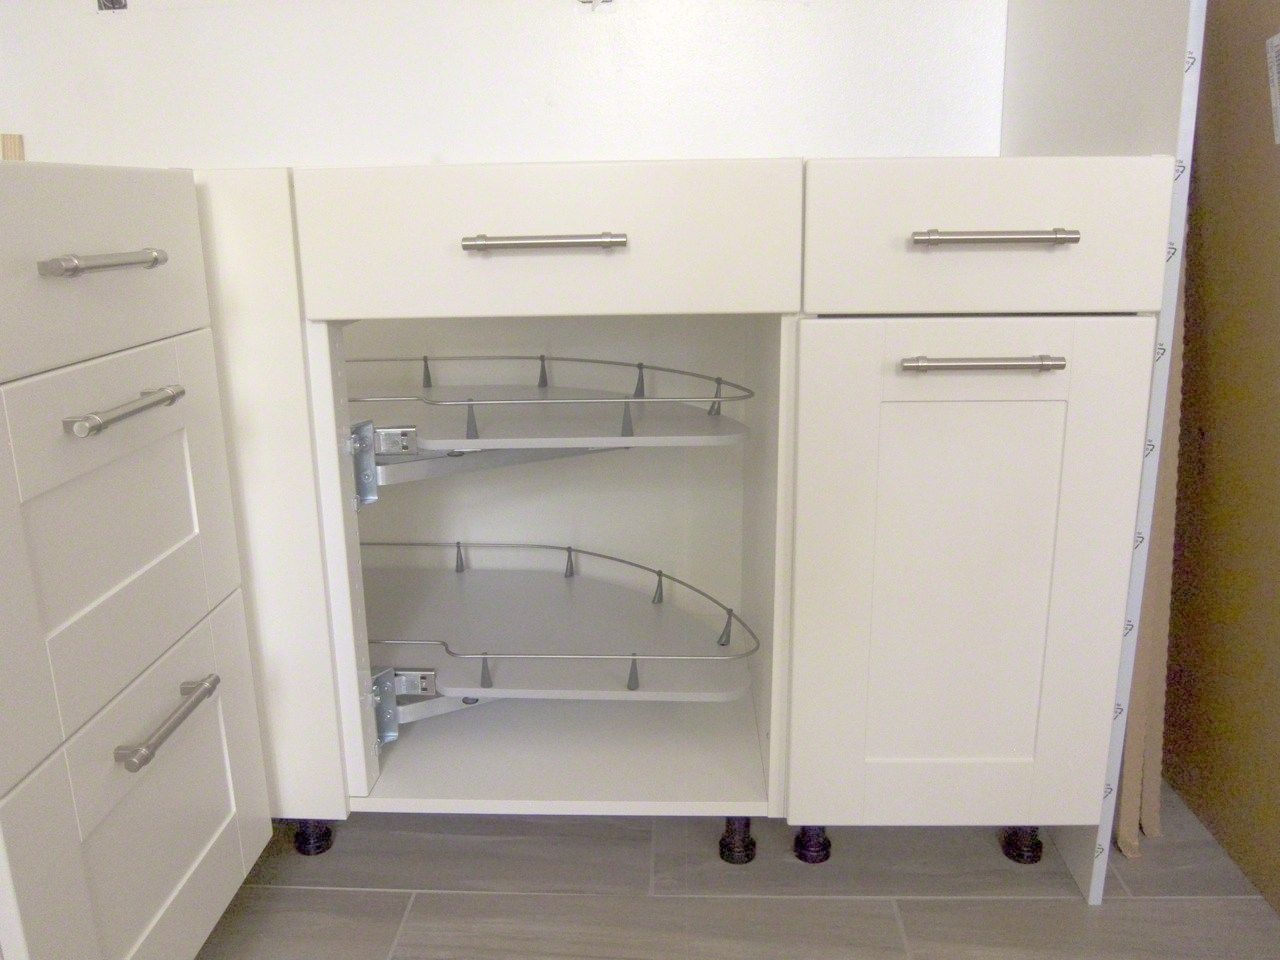 Ikea Akurum Cabinet Lower Install First Pots And Pans Ikea Kitchen Installation Corner Kitchen Cabinet Installing Cabinets